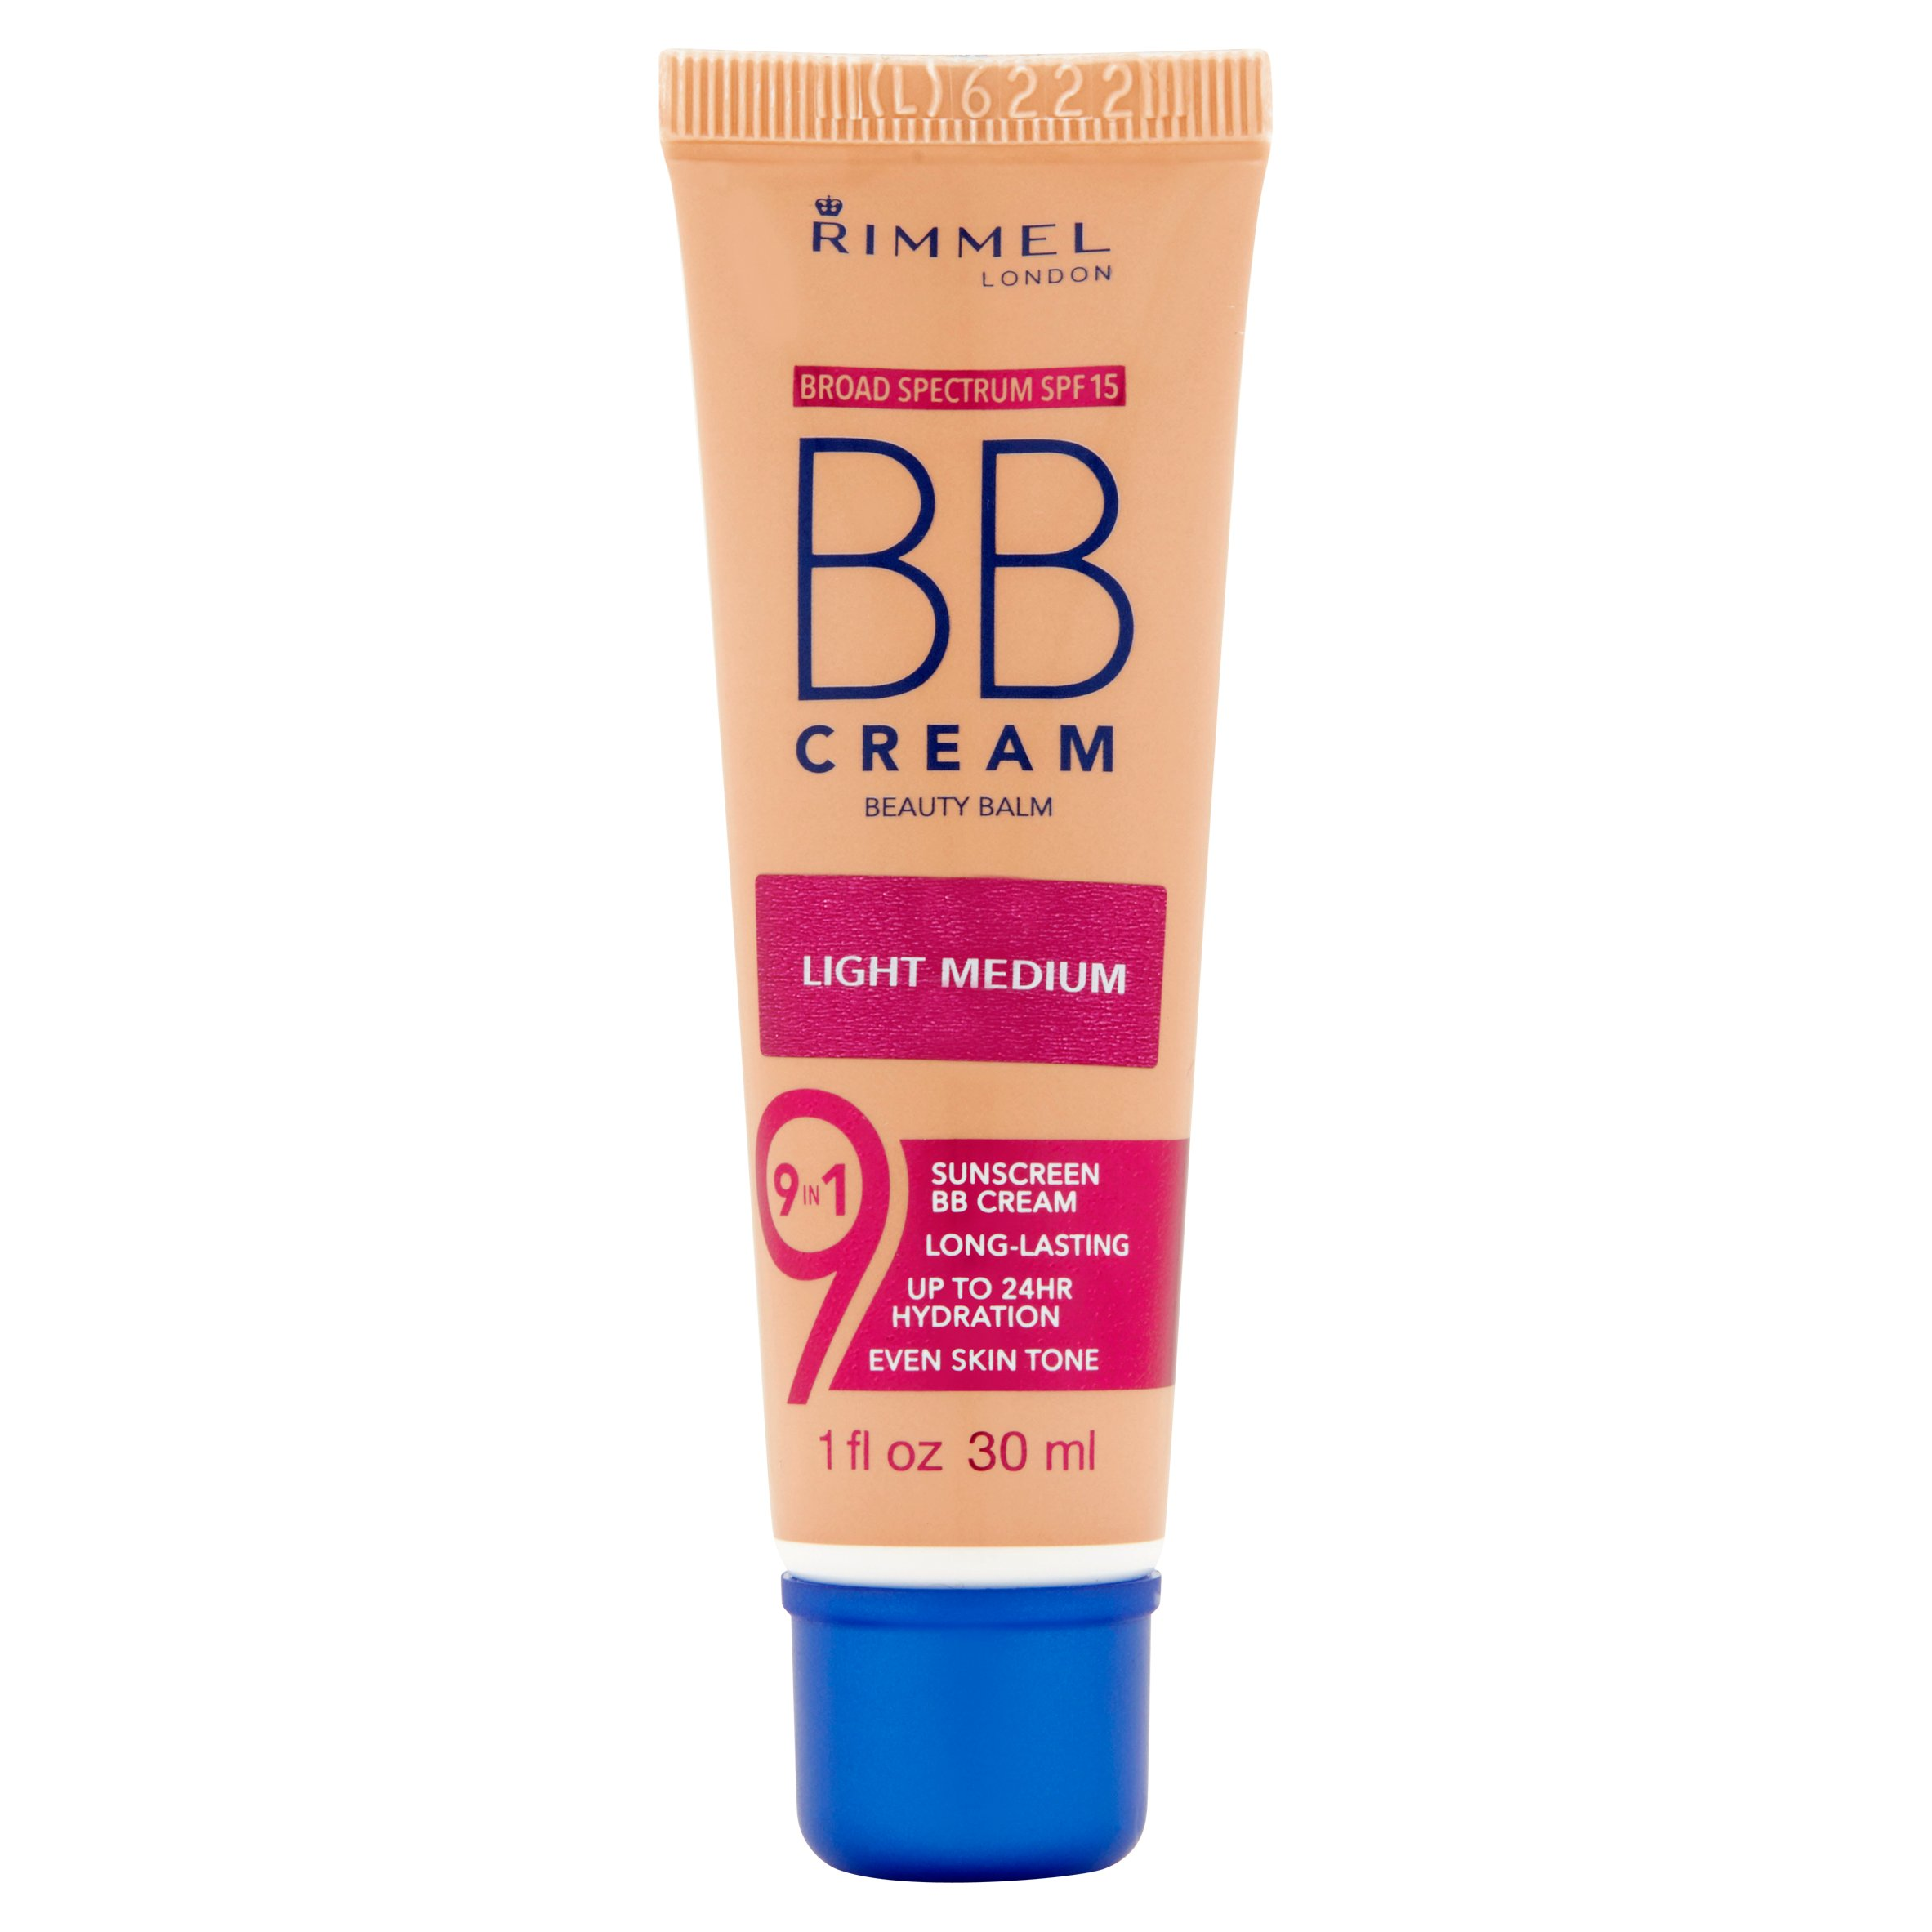 Rimmel 9-in-1 Beauty Balm BB Cream with SPF 15, Light Medium